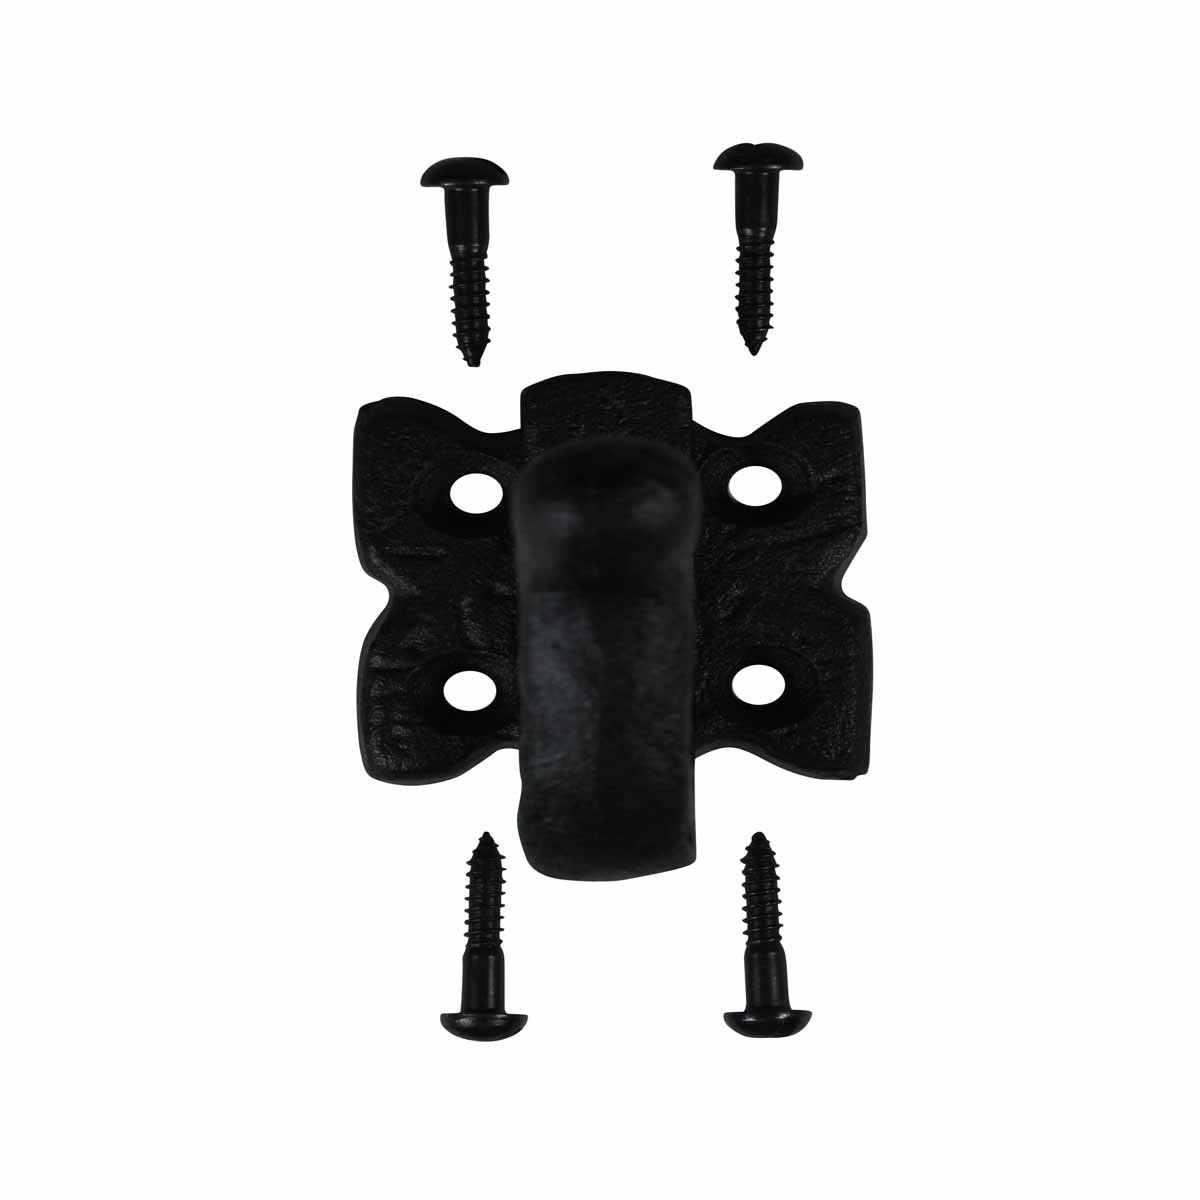 Robe Hook Black Wrought Iron Wrought Iron Coat Hat Jacket Towel Robe Hooks Bathroom Entry Way Hook Hangers